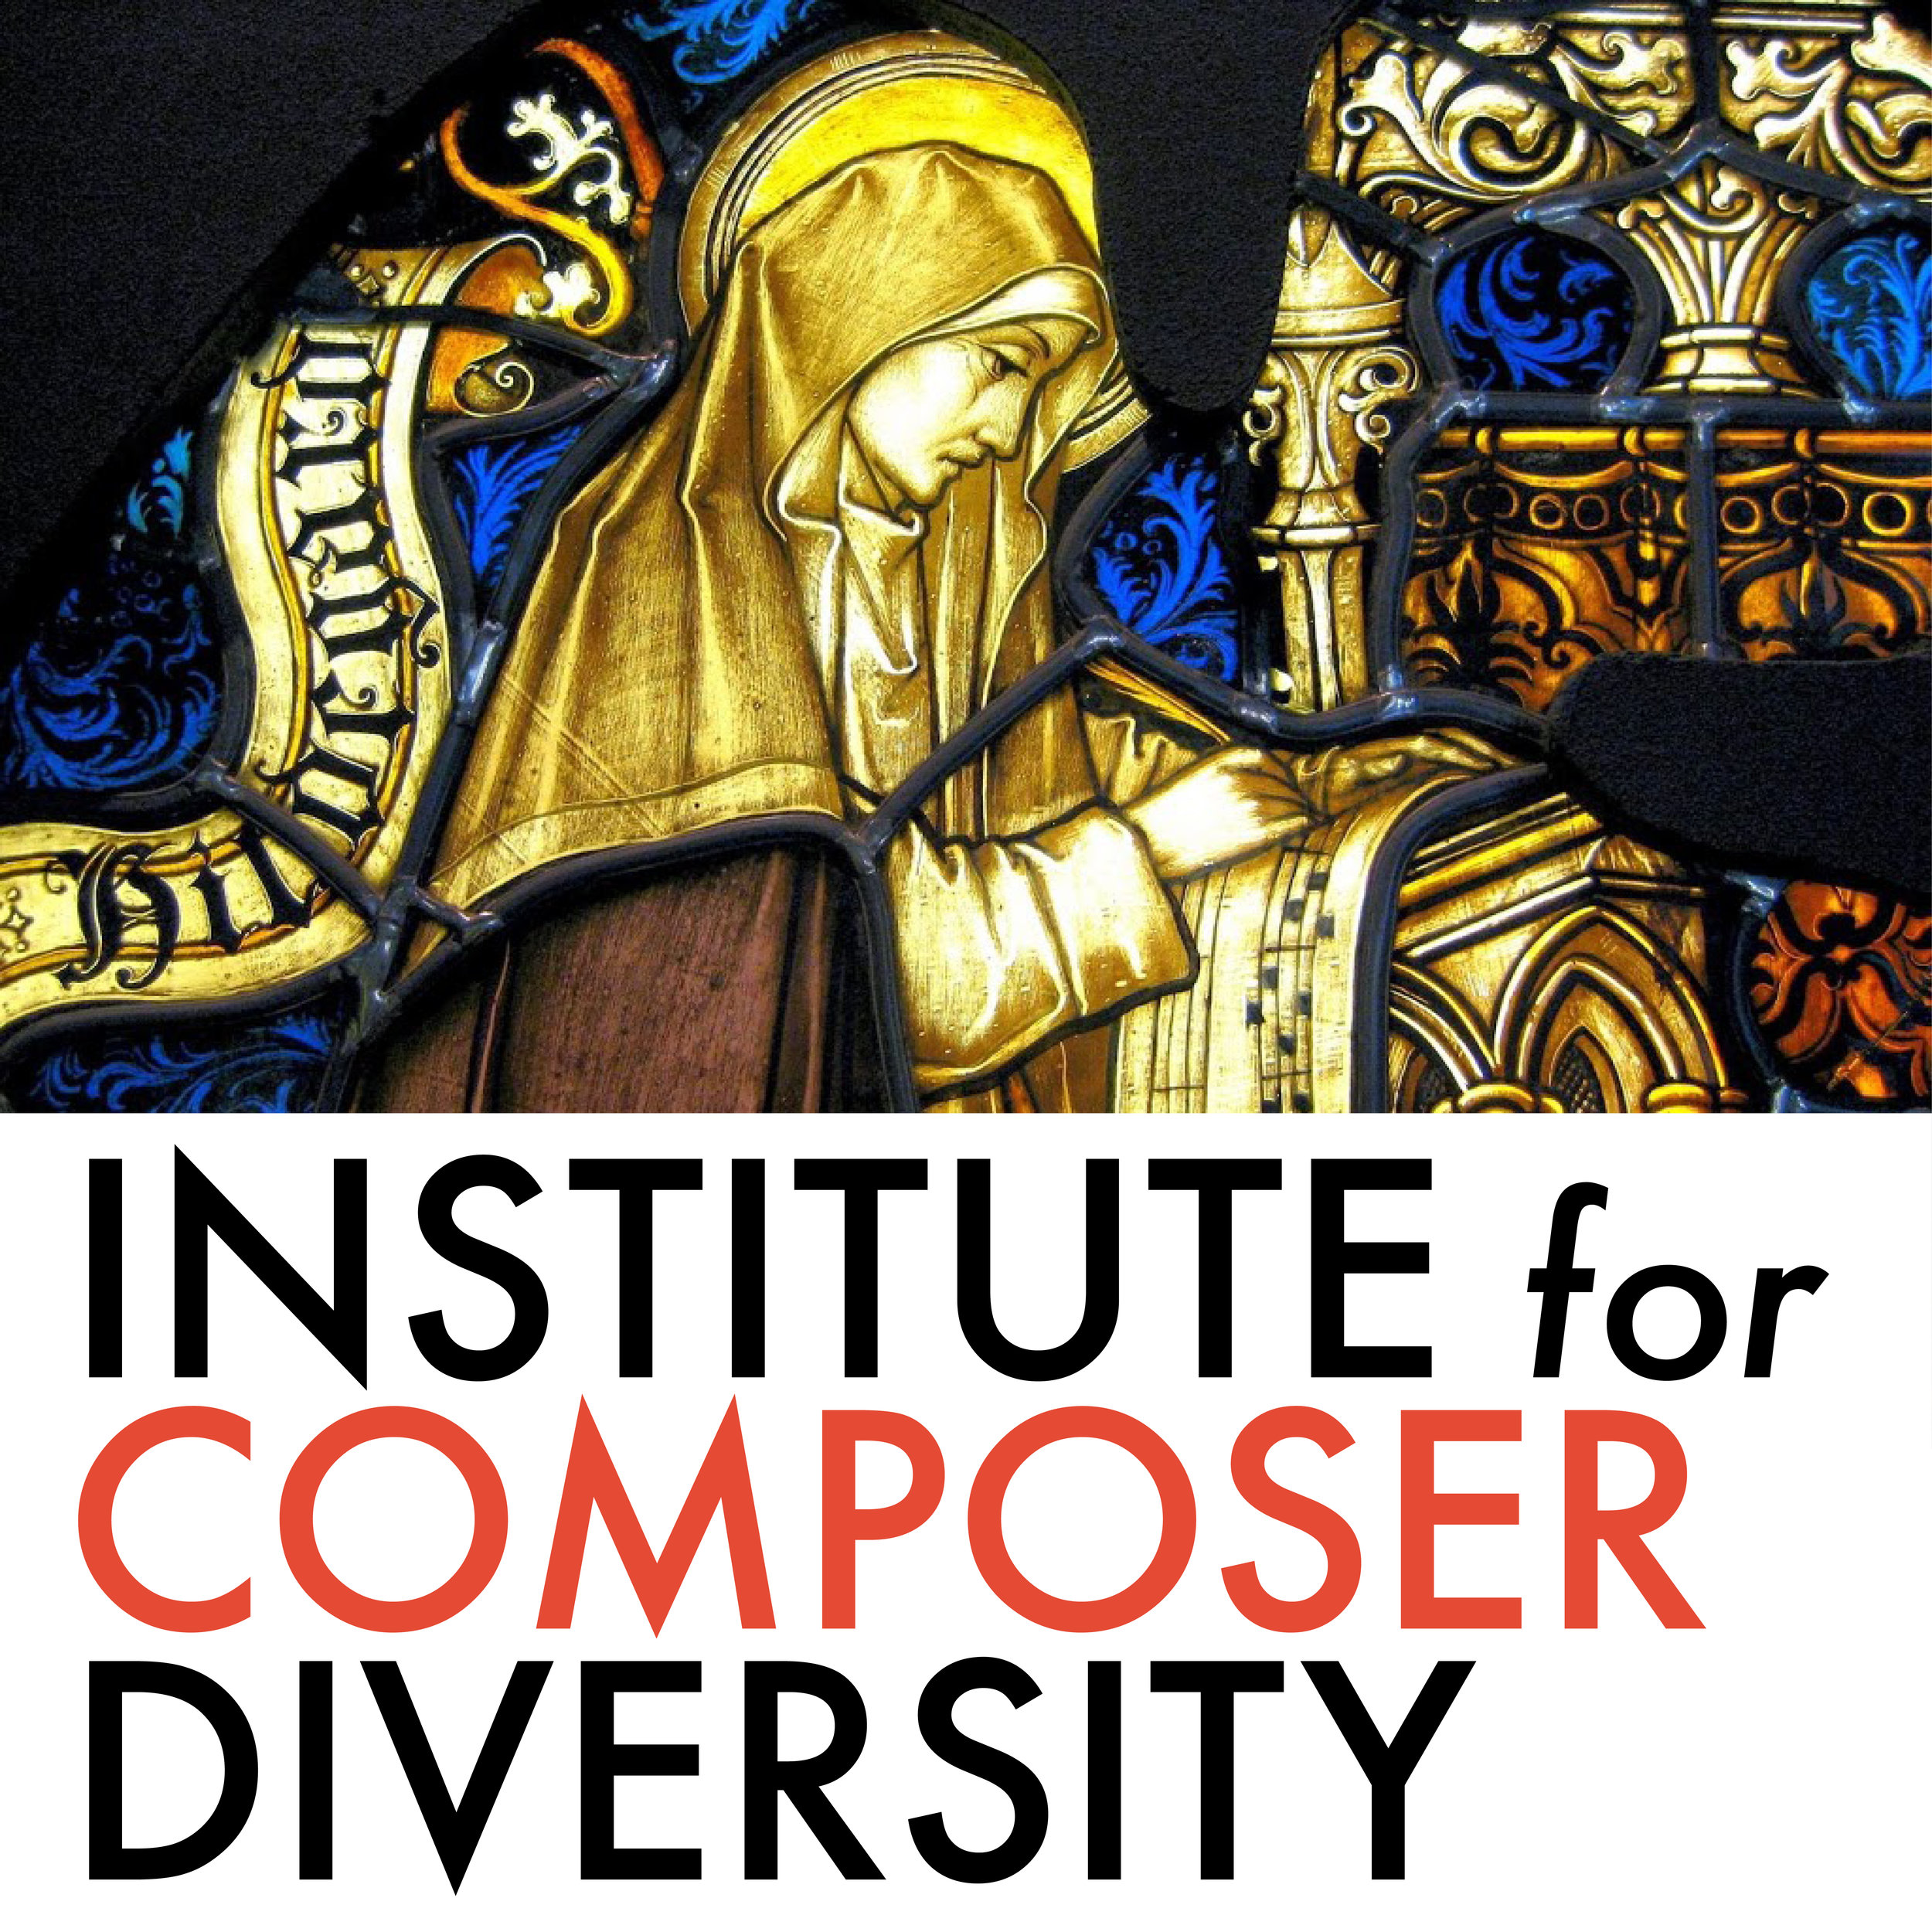 PANDORA: Pre-1750 Choral Music by Underrepresented Composers